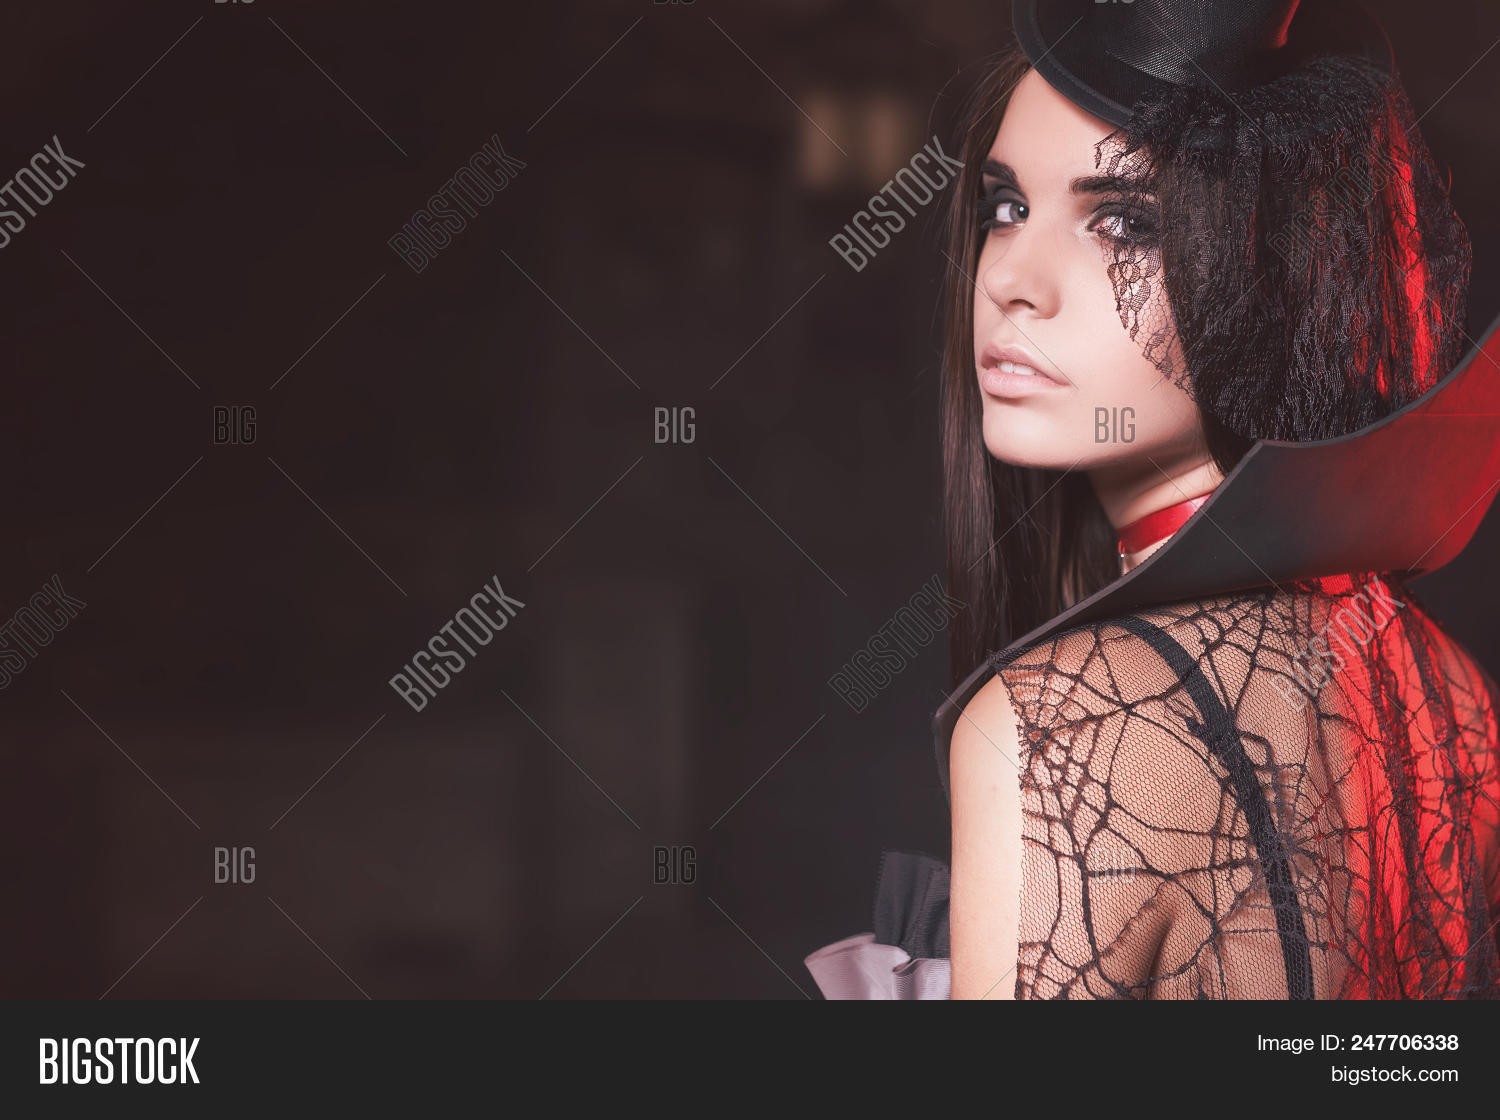 Old Fashion Image Of Halloween Party 2018, Sexy Girl At Haloween In  October. Sexy